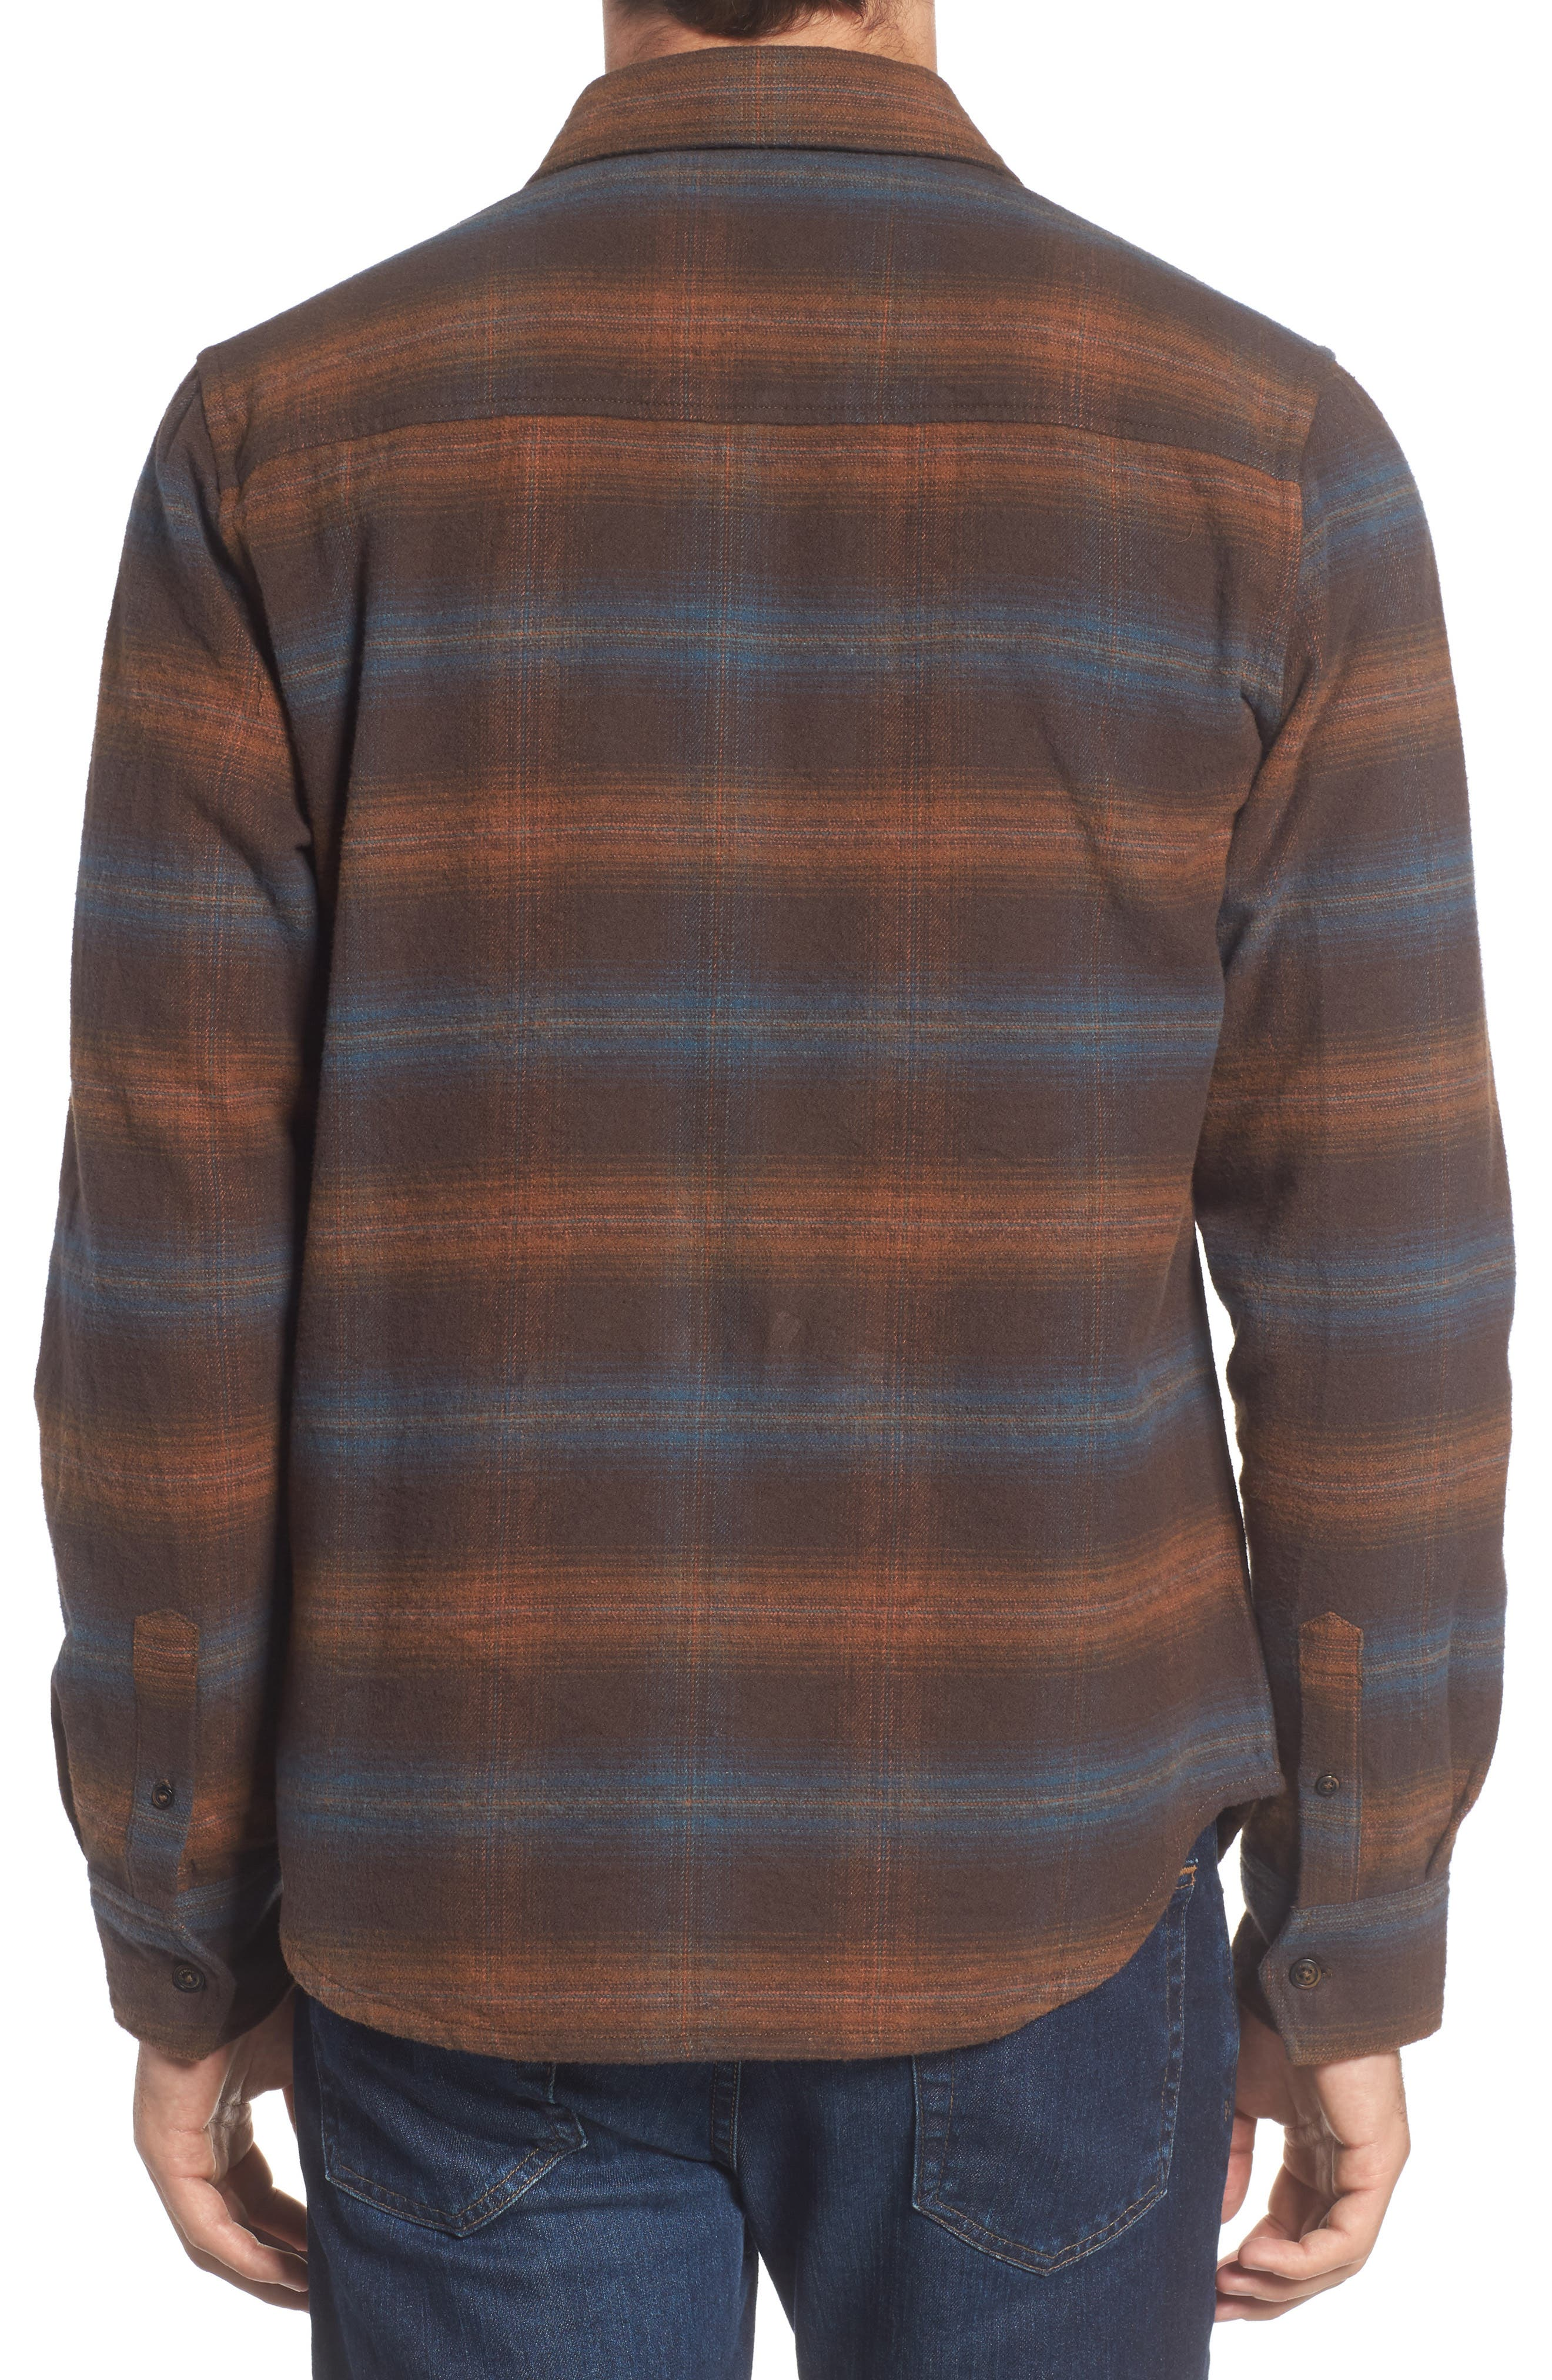 Canyon Plaid Brushed Twill Shirt,                             Alternate thumbnail 2, color,                             200